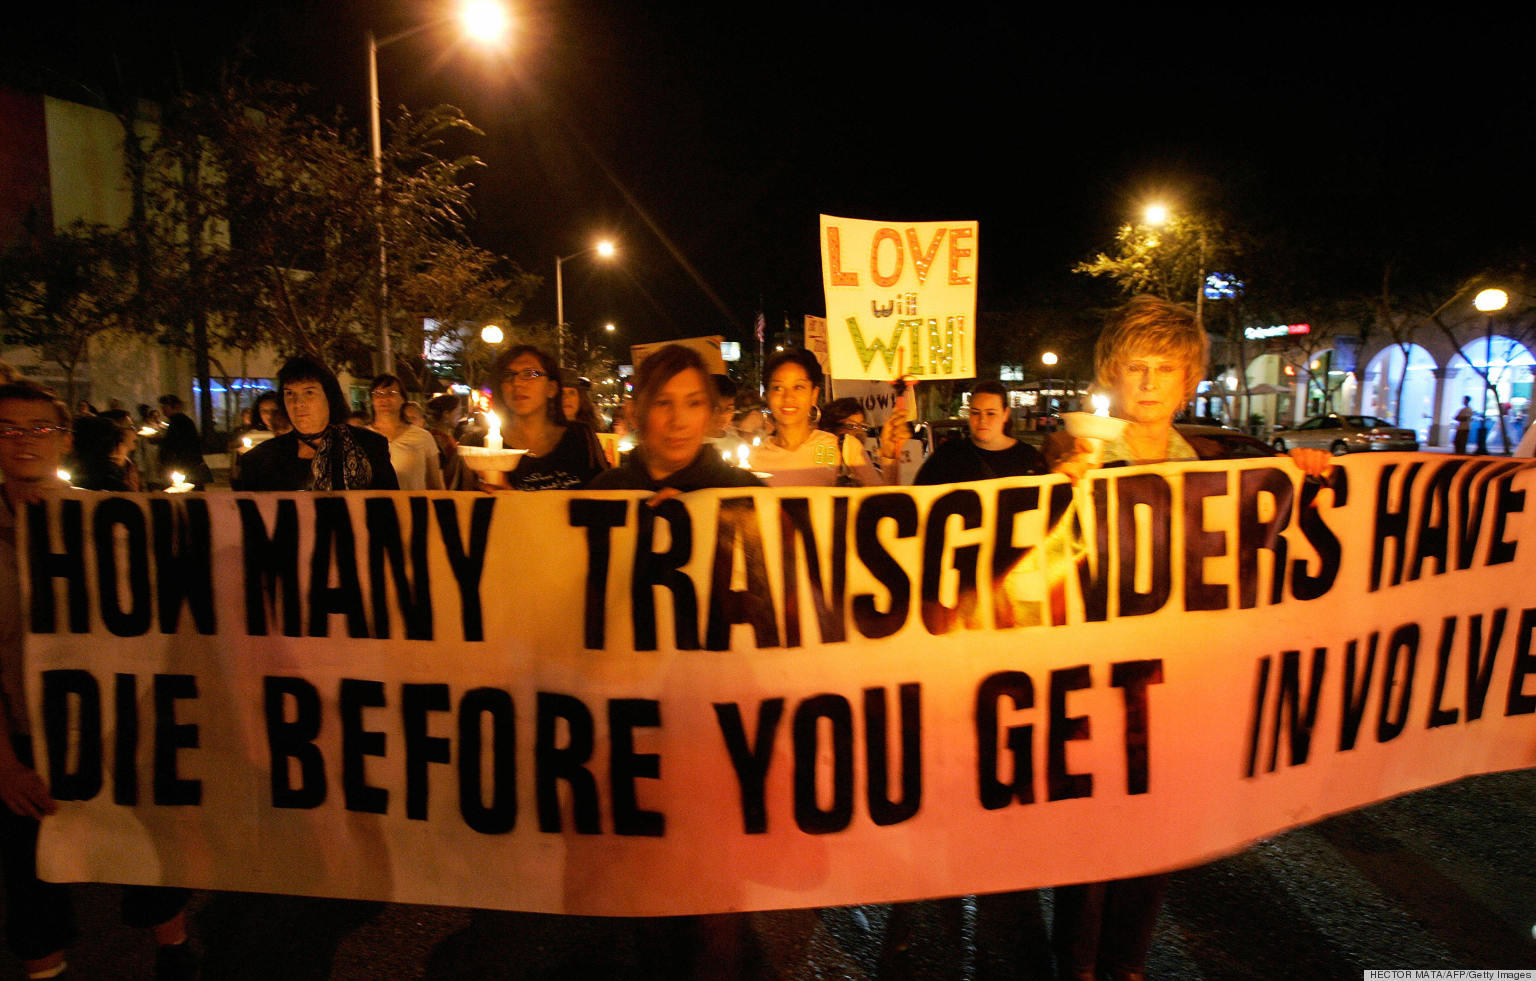 "West Hollywood, UNITED STATES: Members of the Gay, Lesbian and Transgender community demonstrate during the ""Transgender Day of Remembrance"" in West Hollywood, CA, 20 November 2006. The day was set aside to remember those who were killed due to anti-transgender hate or prejudice. The demonstration finshed at the Mathew Sheppard Square, a place that was named after the young gay man was killed because of his sexual orientation in Laramie, Wyoming in 1998. AFP PHOTO / HECTOR MATA (Photo credit should read HECTOR MATA/AFP/Getty Images)"